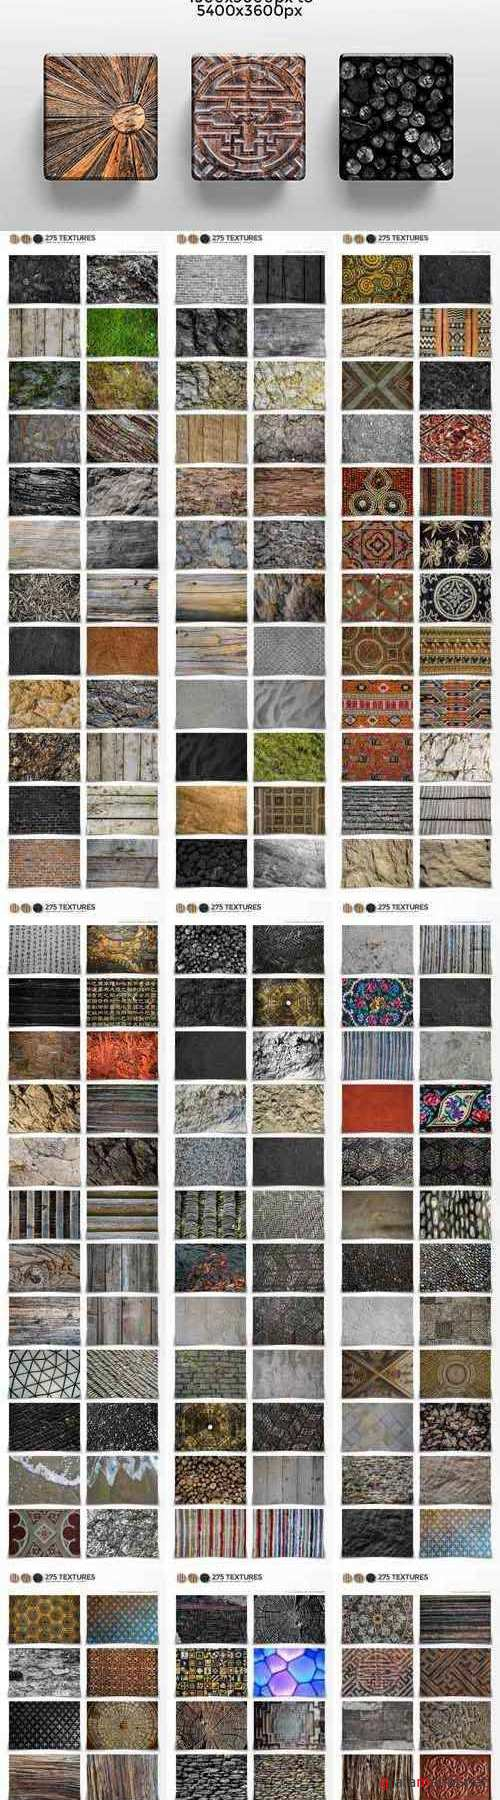 275 Textures From Around the World 1788384